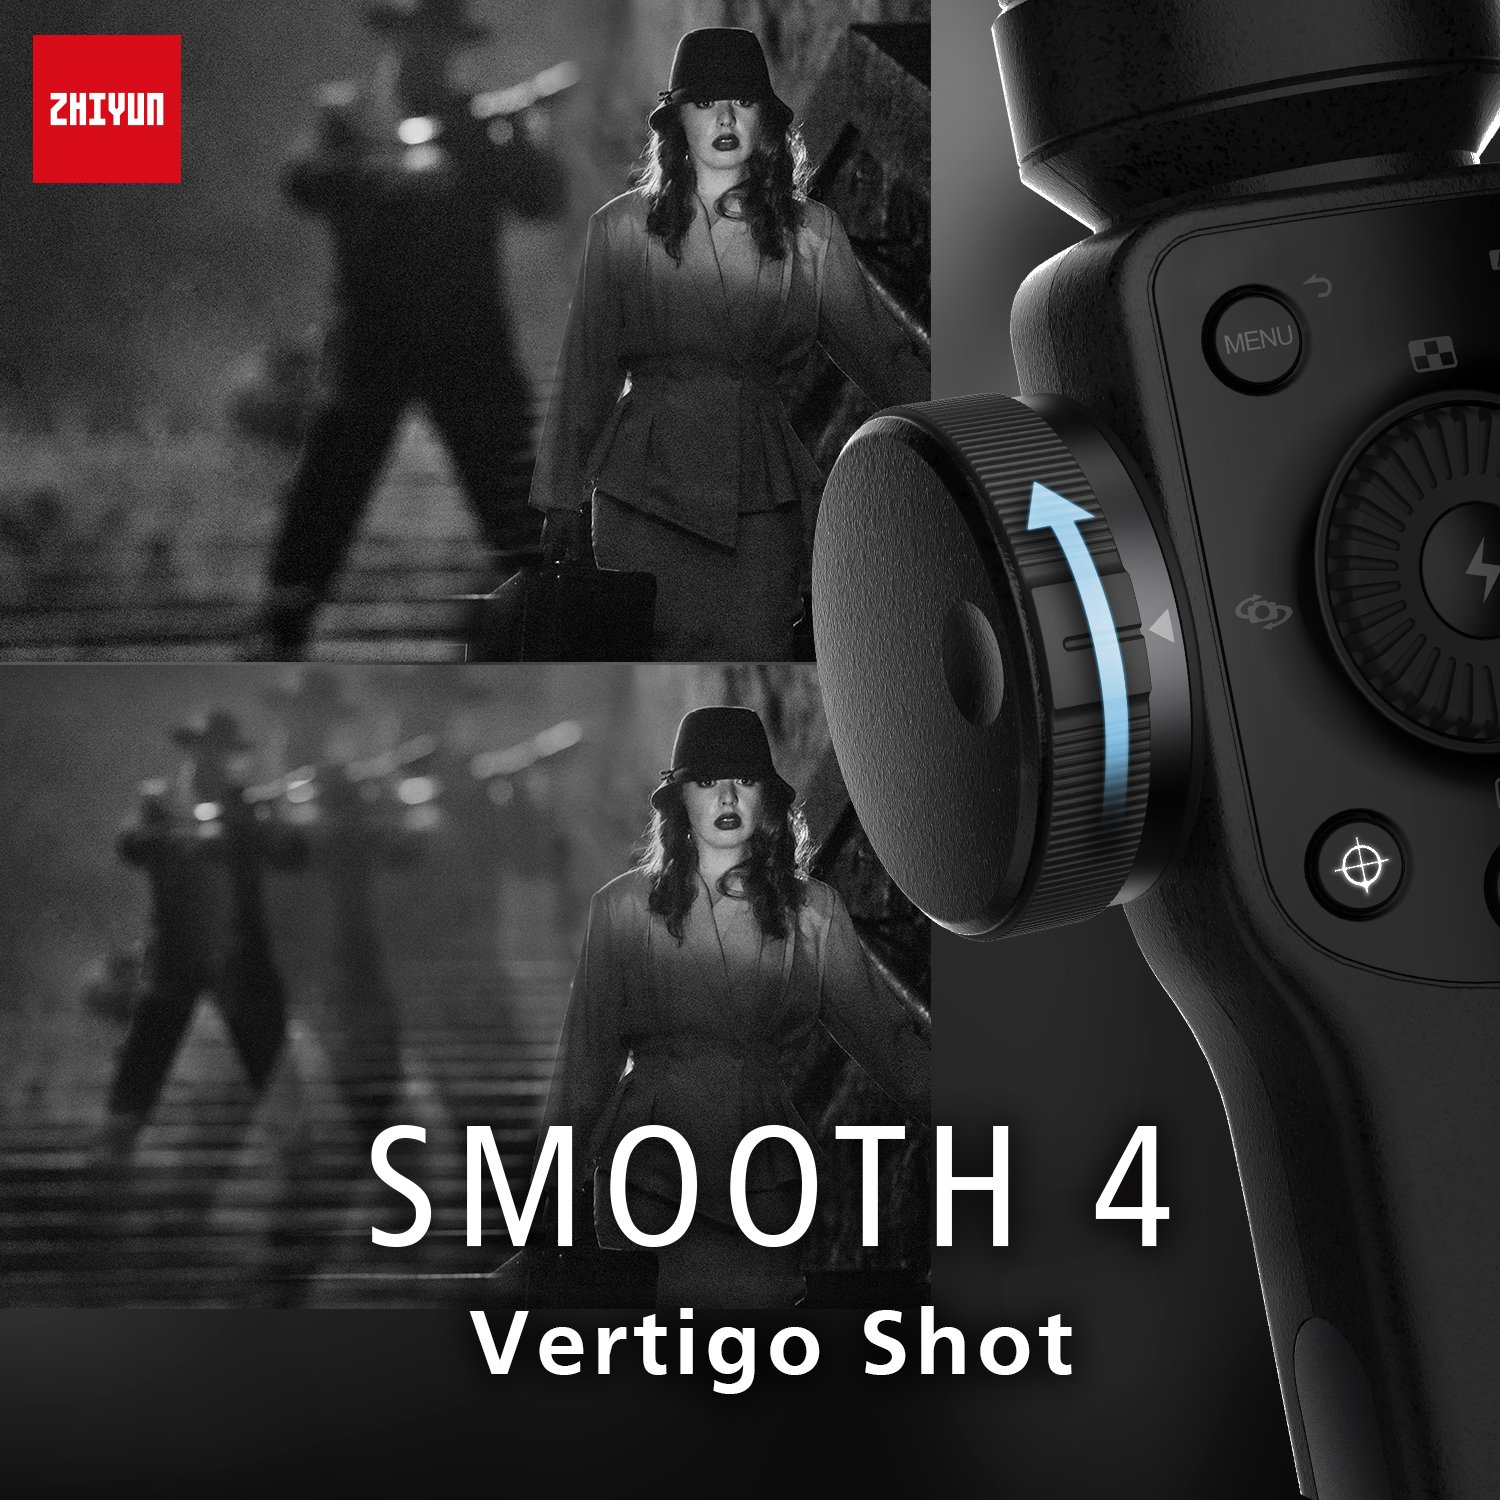 Zhiyun Smooth 4 3-Axis Handheld Gimbal Stabilizer - Unboxed